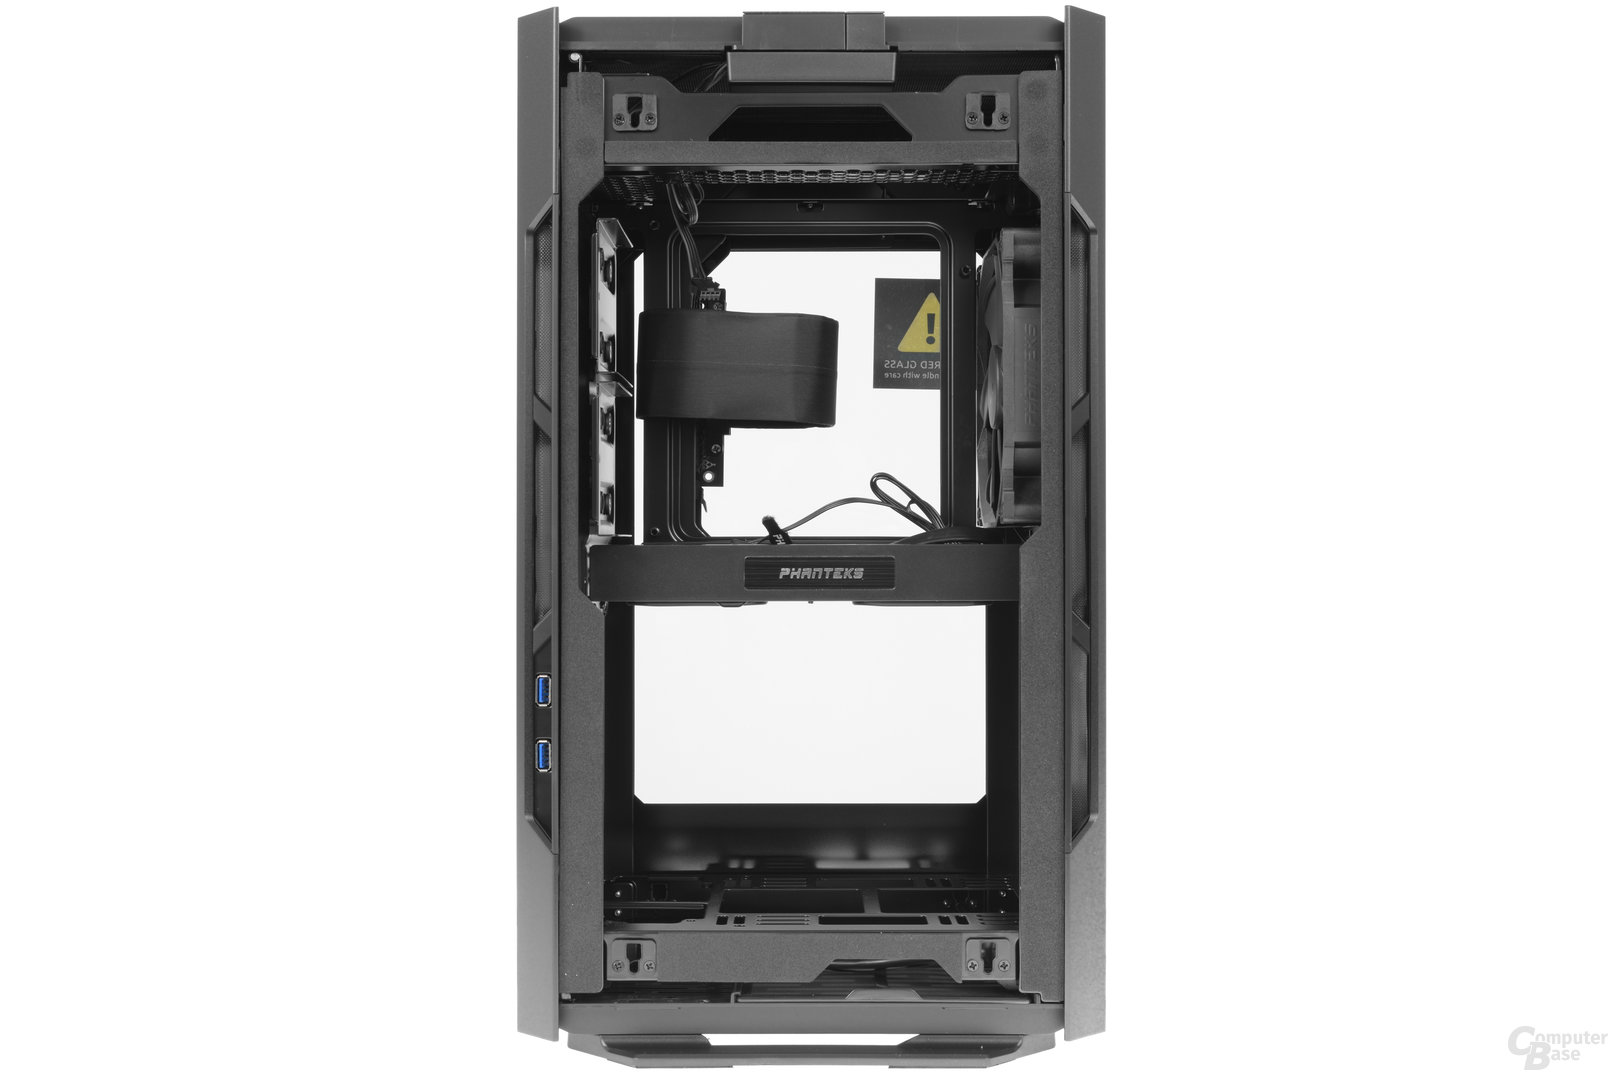 Phanteks Enthoo Evolv Shift – Innenraumansicht